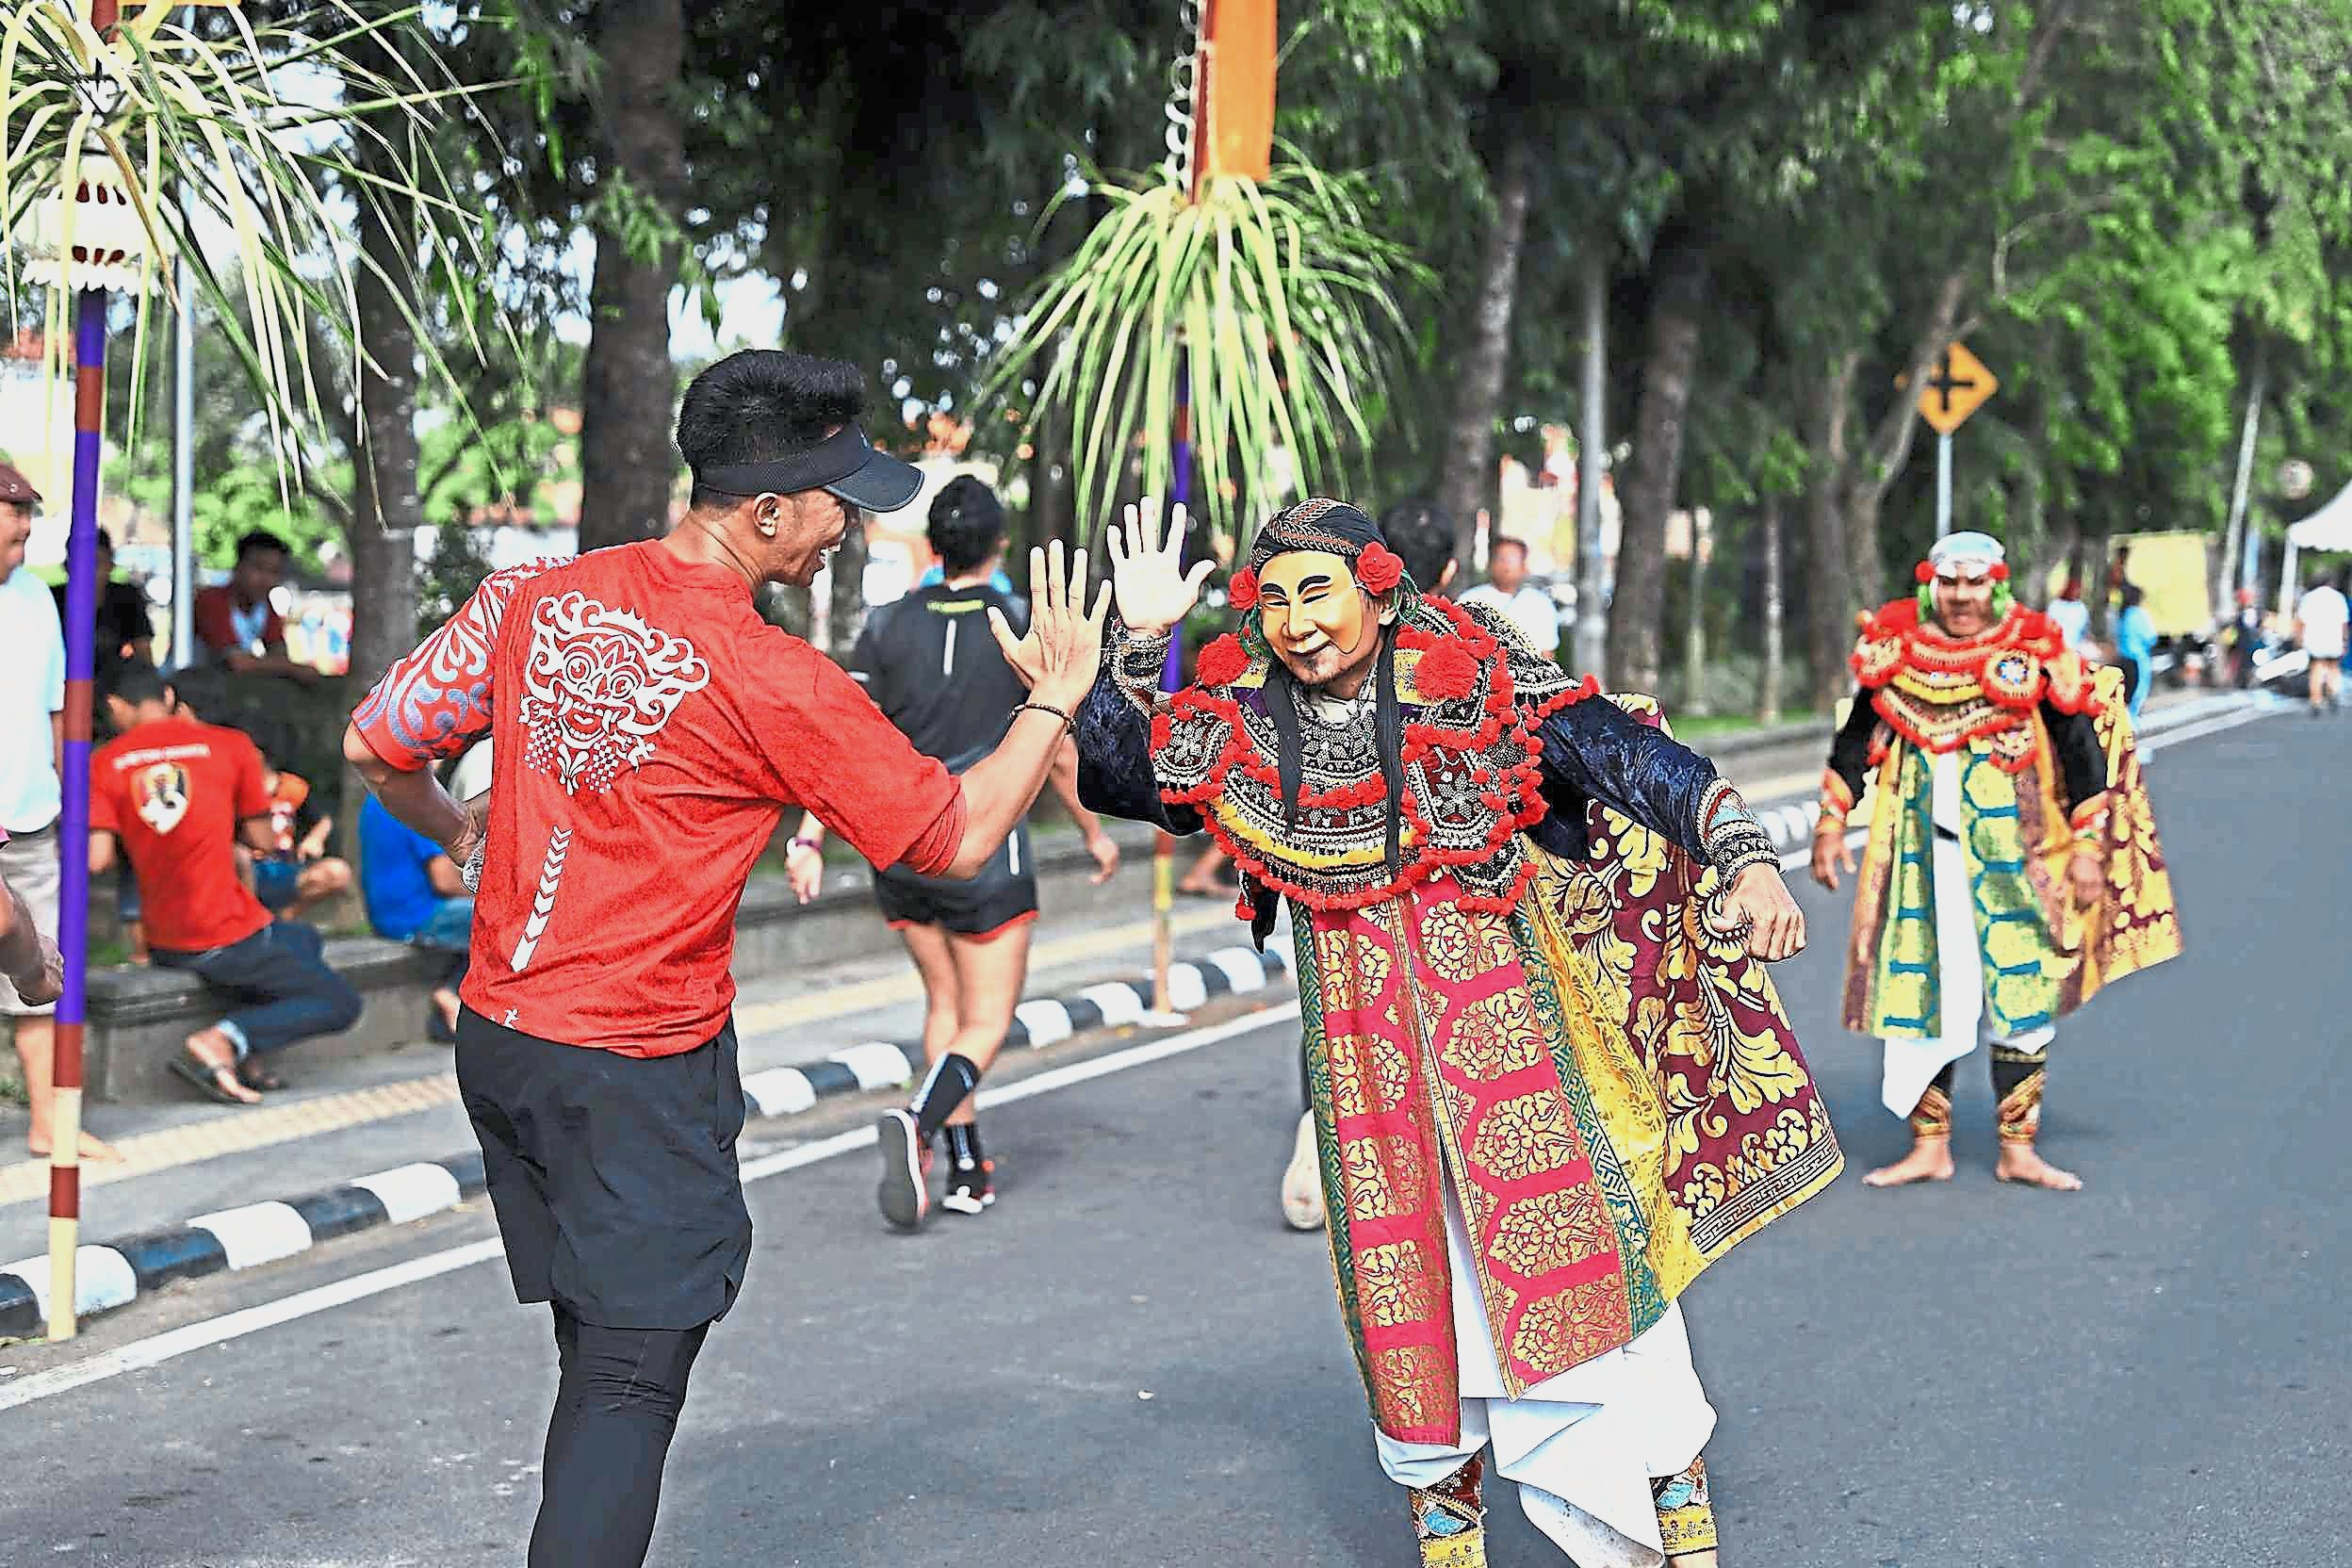 A traditional Balinese dancer cheering and giving a high-five to a passing runner.